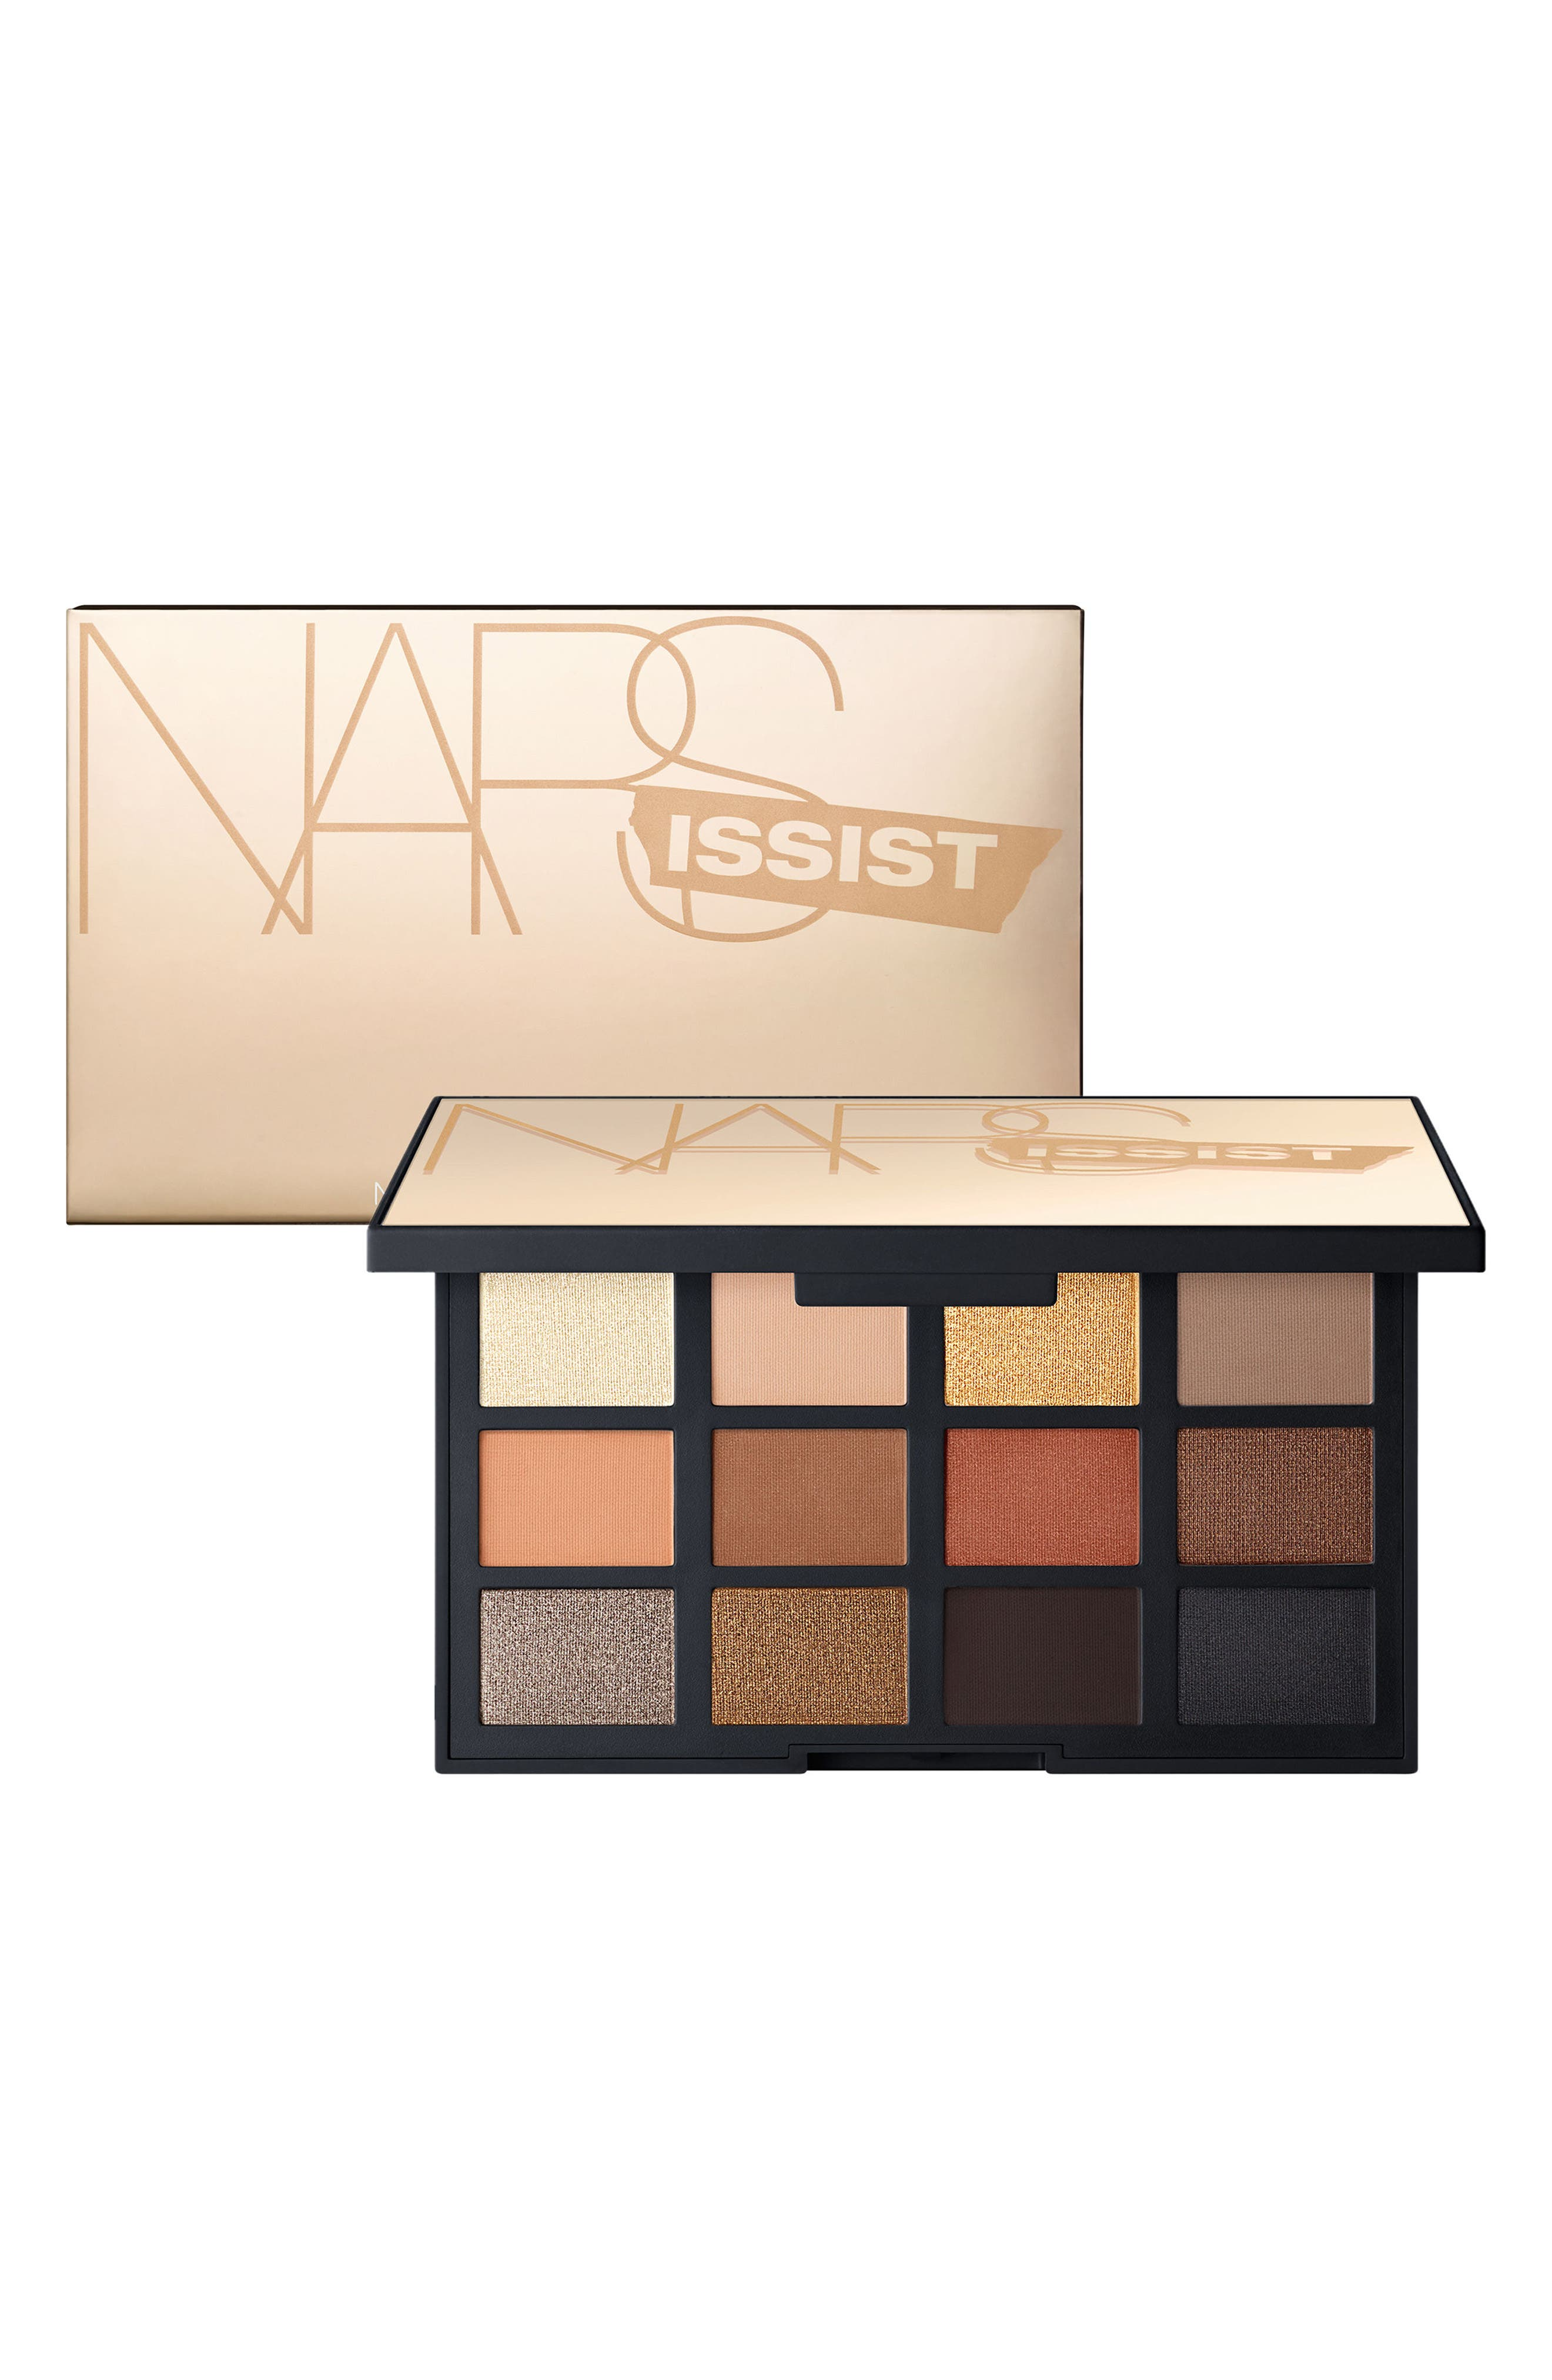 NARSissist Loaded Eyeshadow Palette,                             Alternate thumbnail 7, color,                             No Color